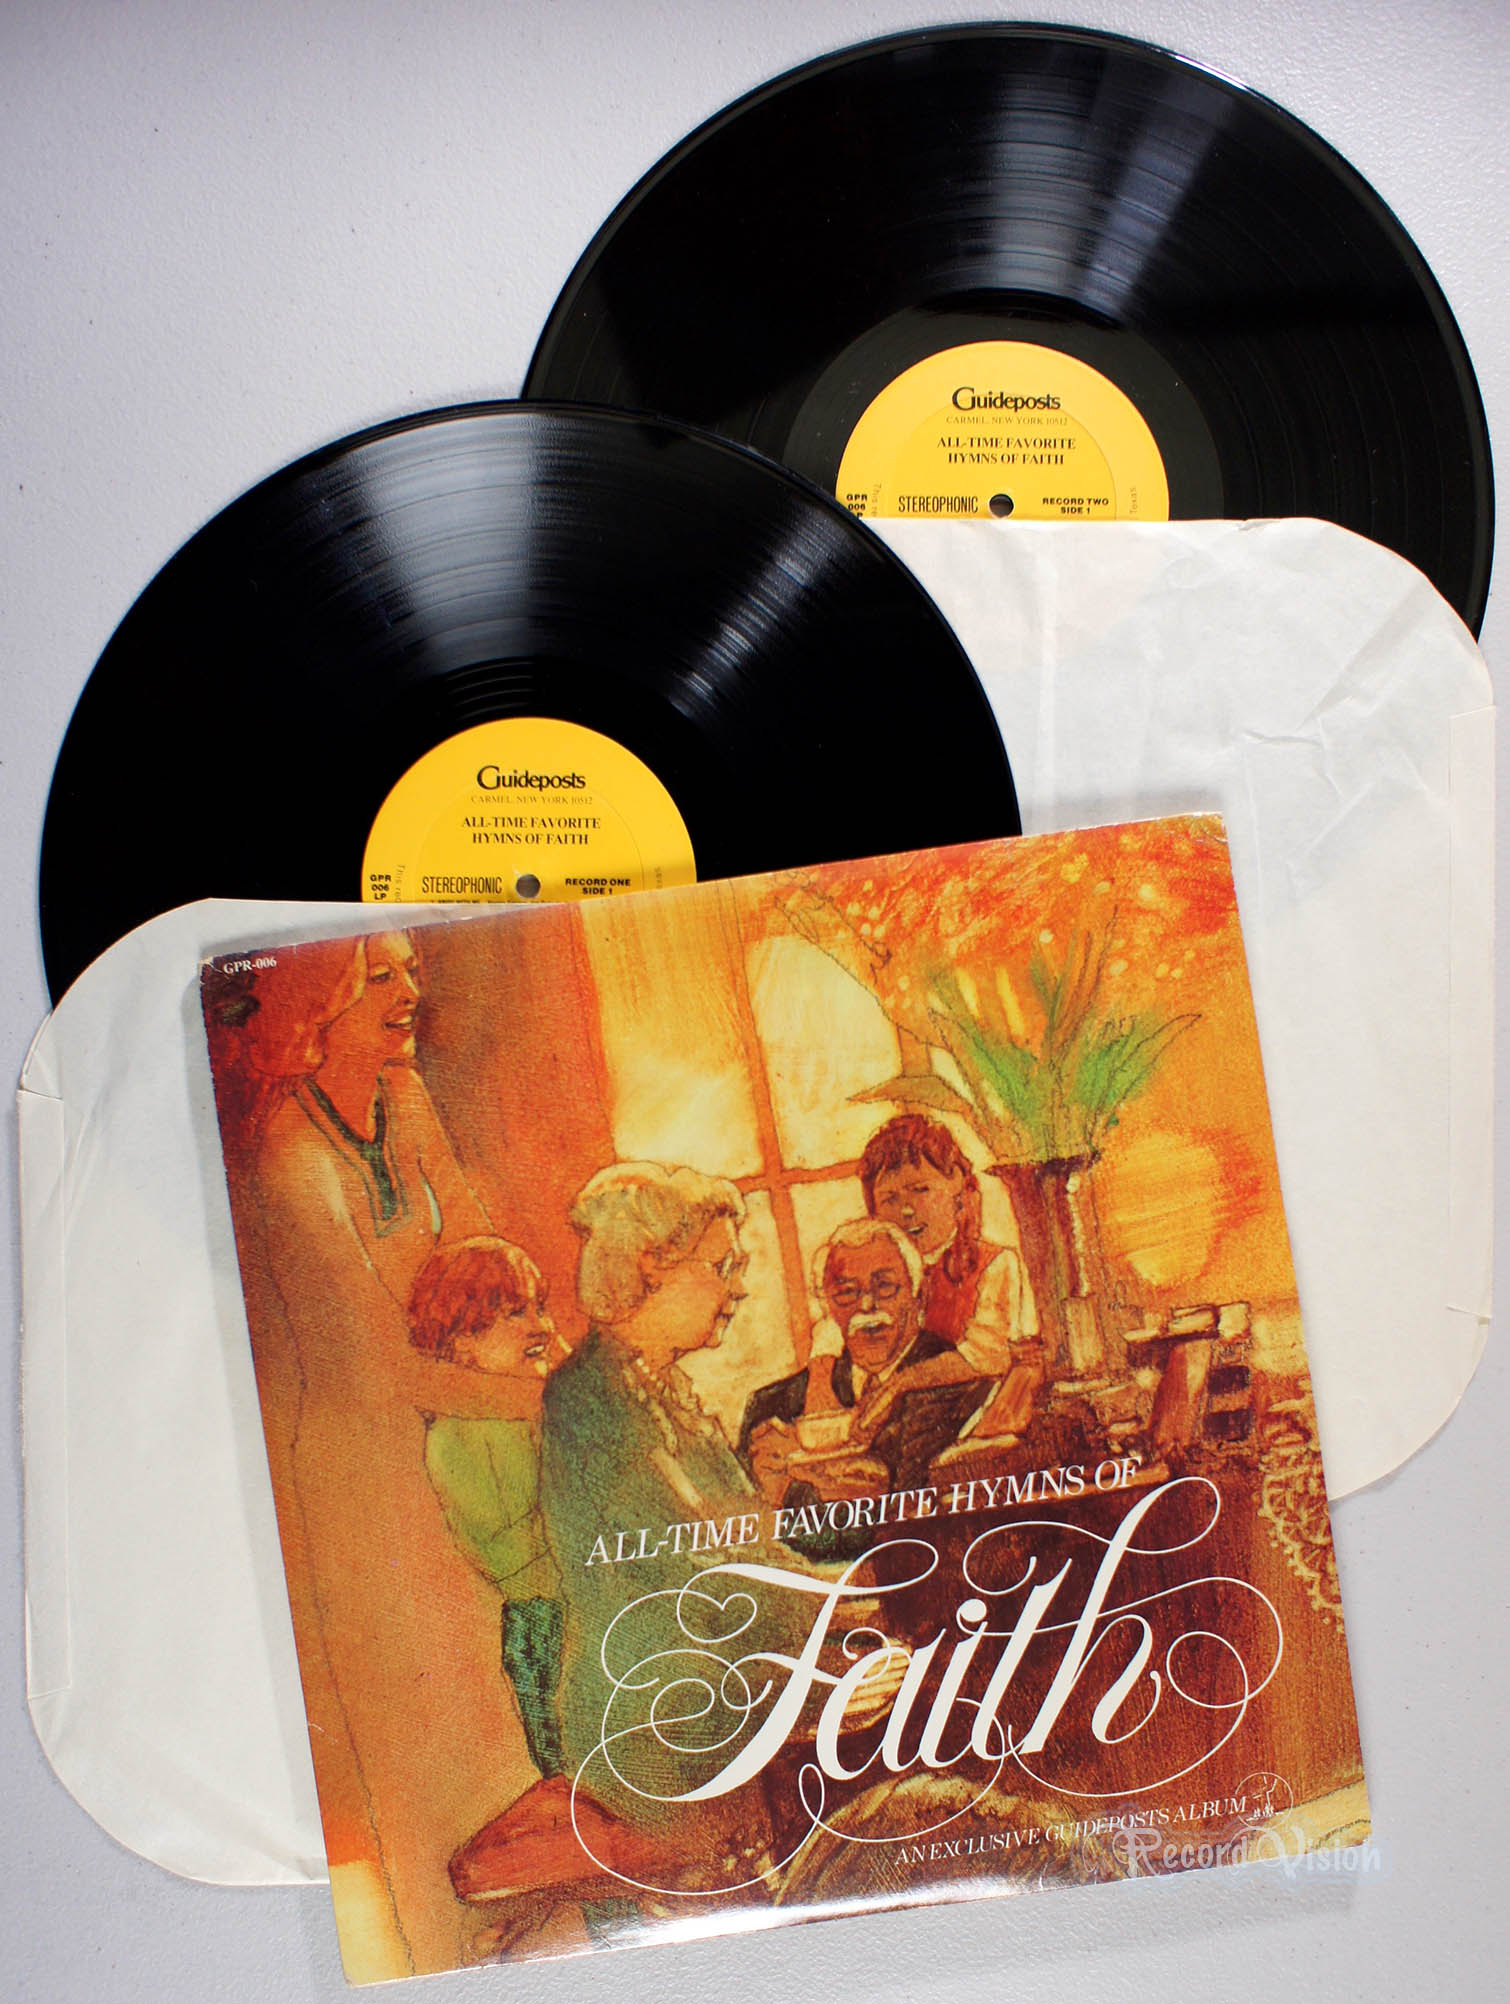 GUIDEPOSTS - All-Time Favorite Hymns of Faith - LP 2枚